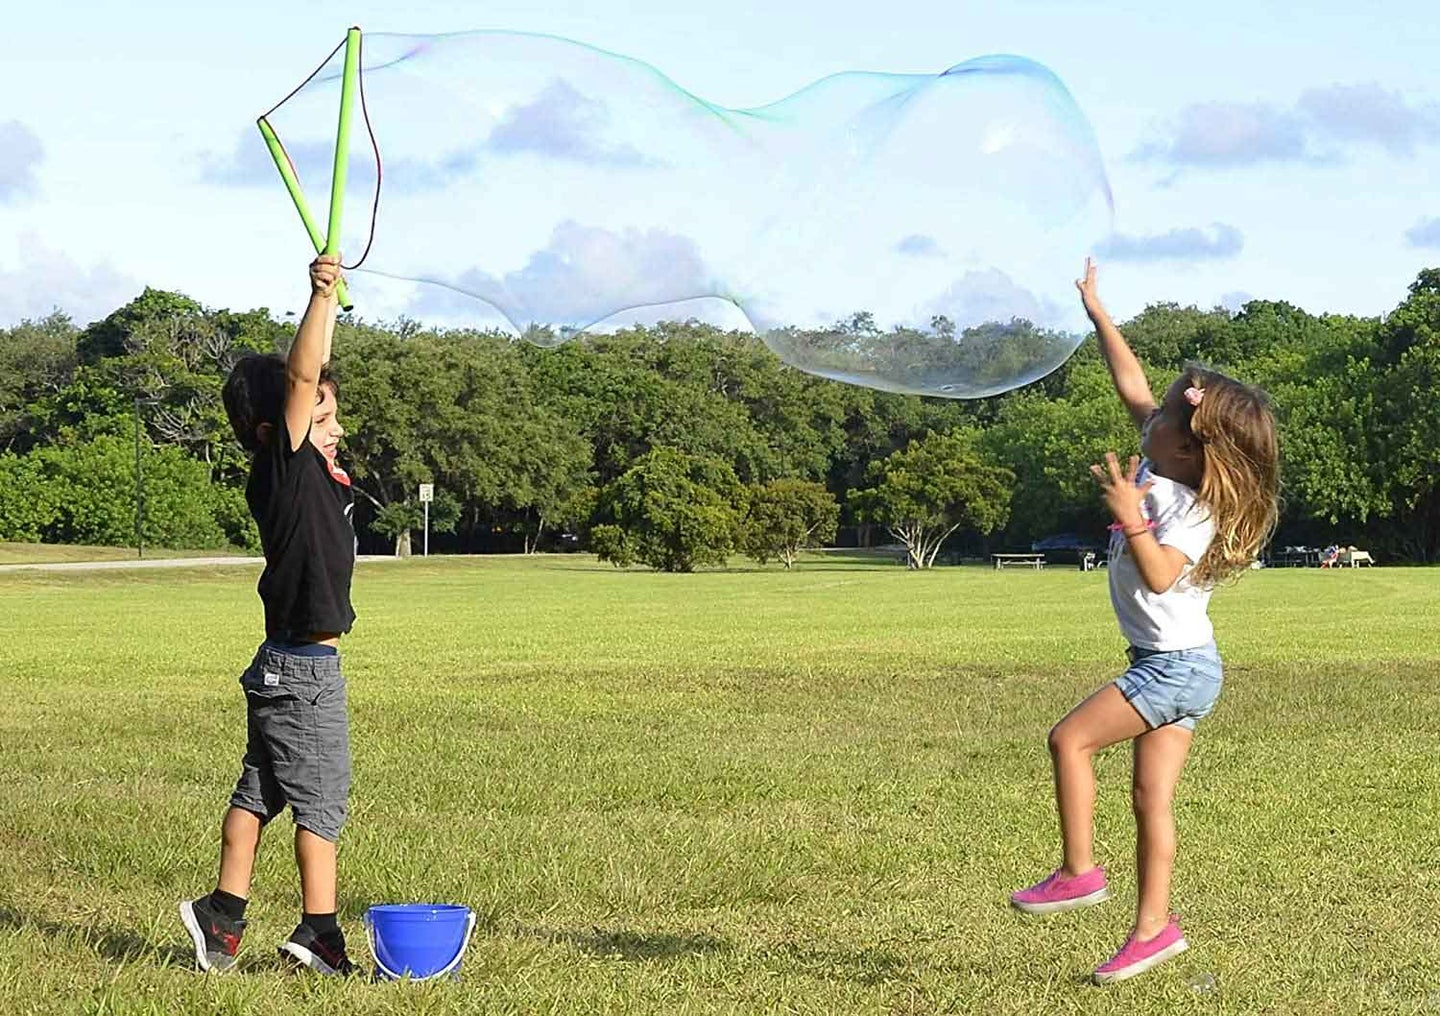 Two kids playing with giant bubbles in a park